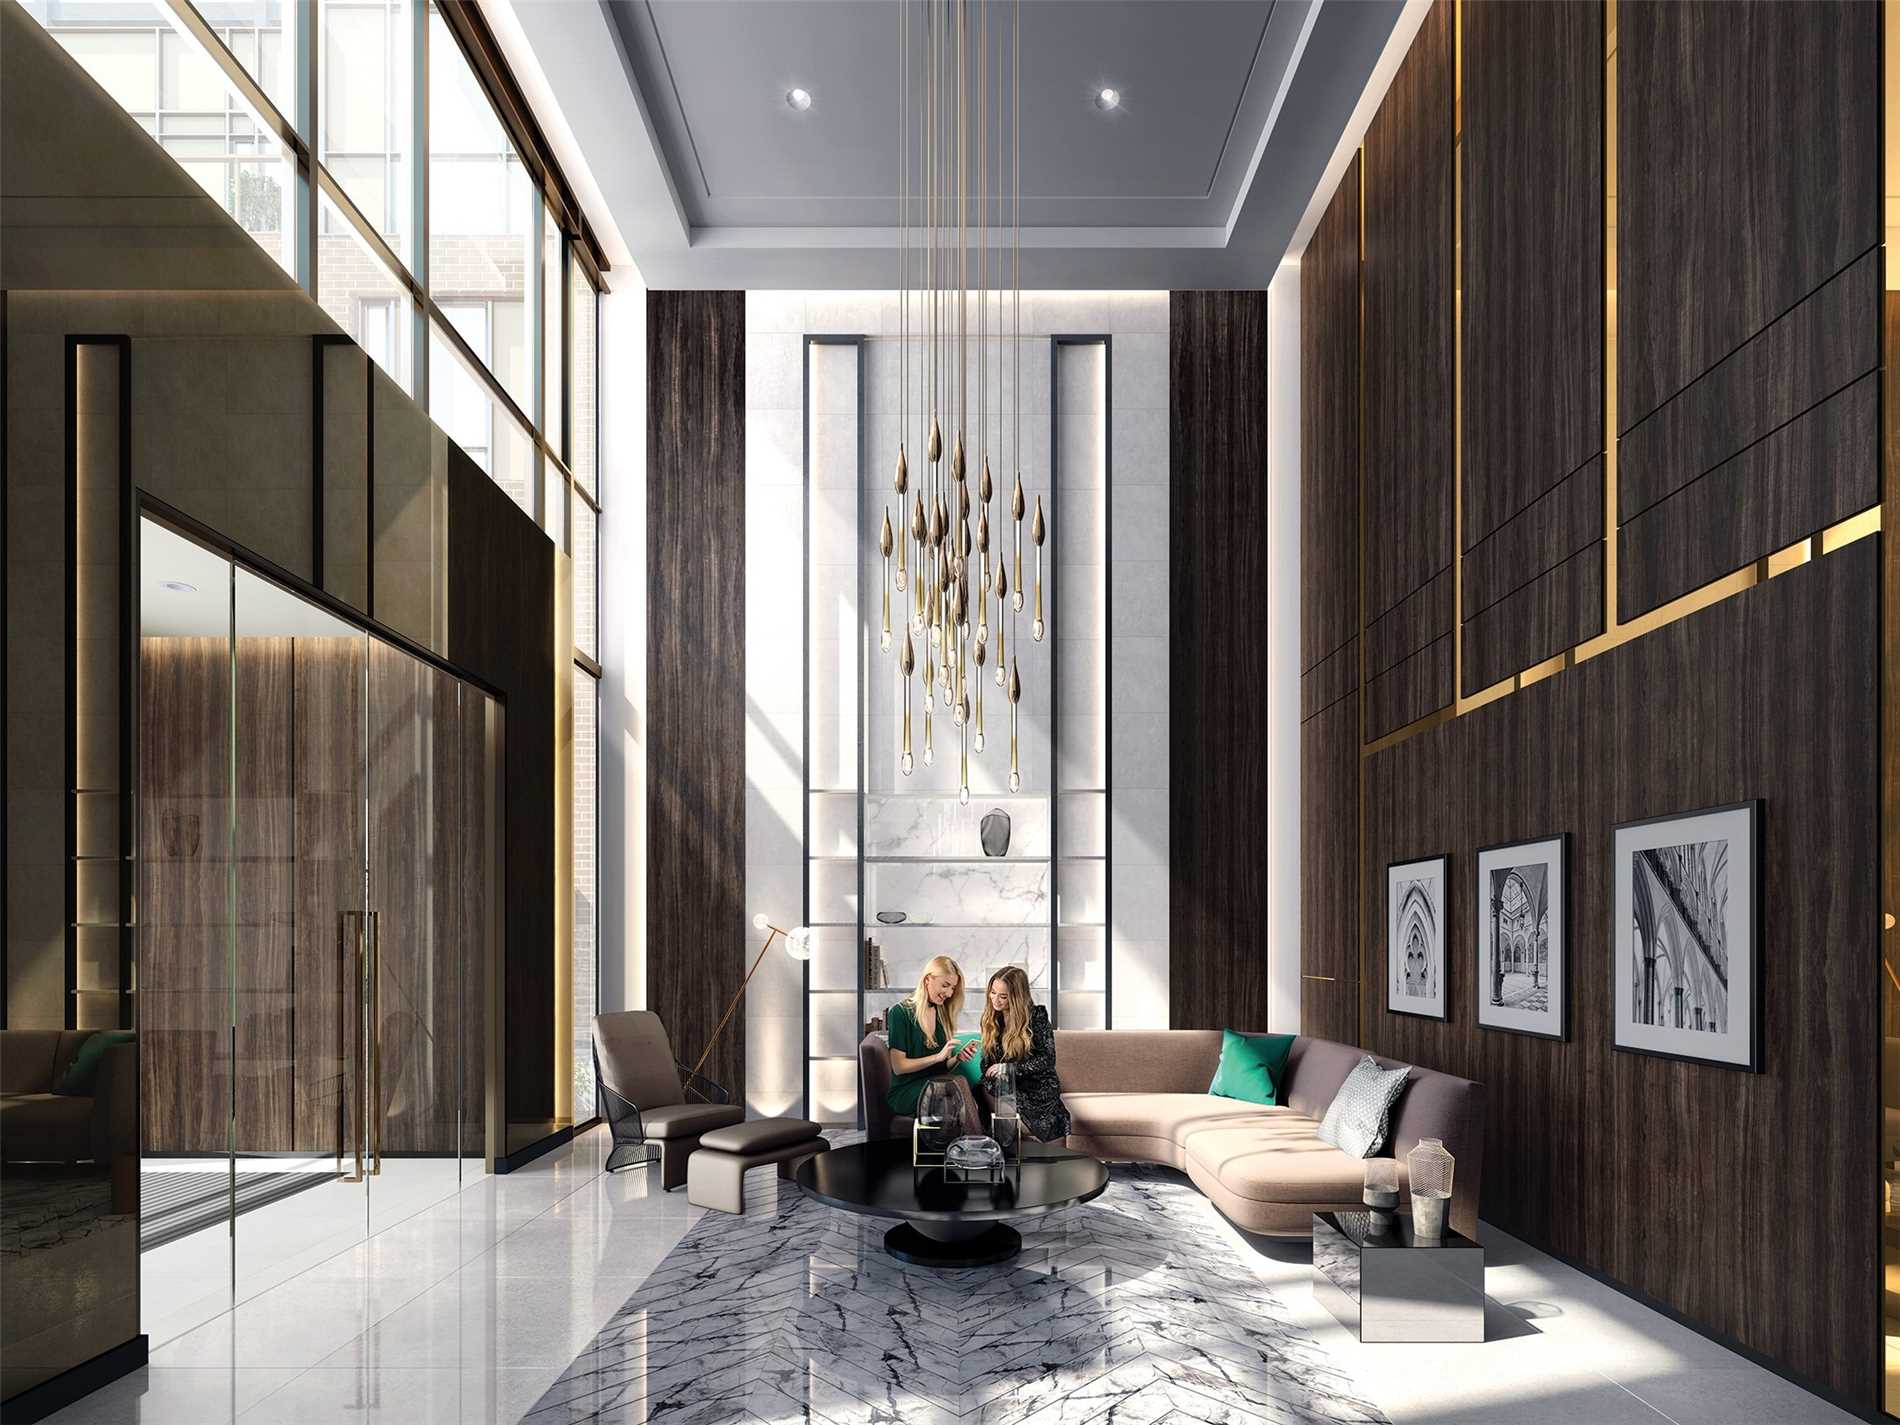 260 High Park Ave ## 116, The Junction, Toronto - Price